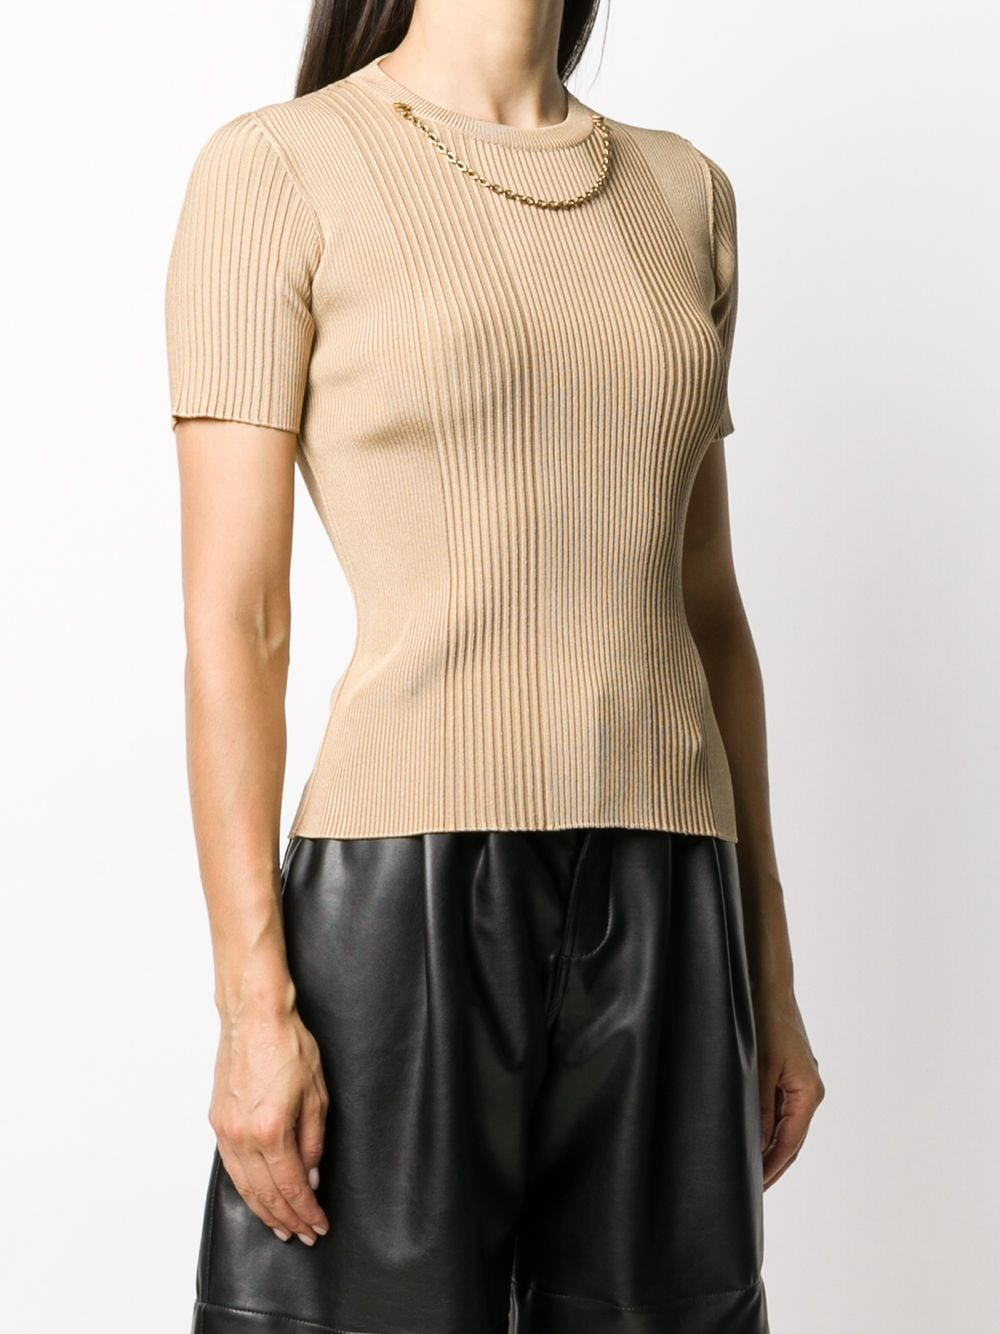 GIVENCHY GIVENCHY | Top | BW60Q54Z76280